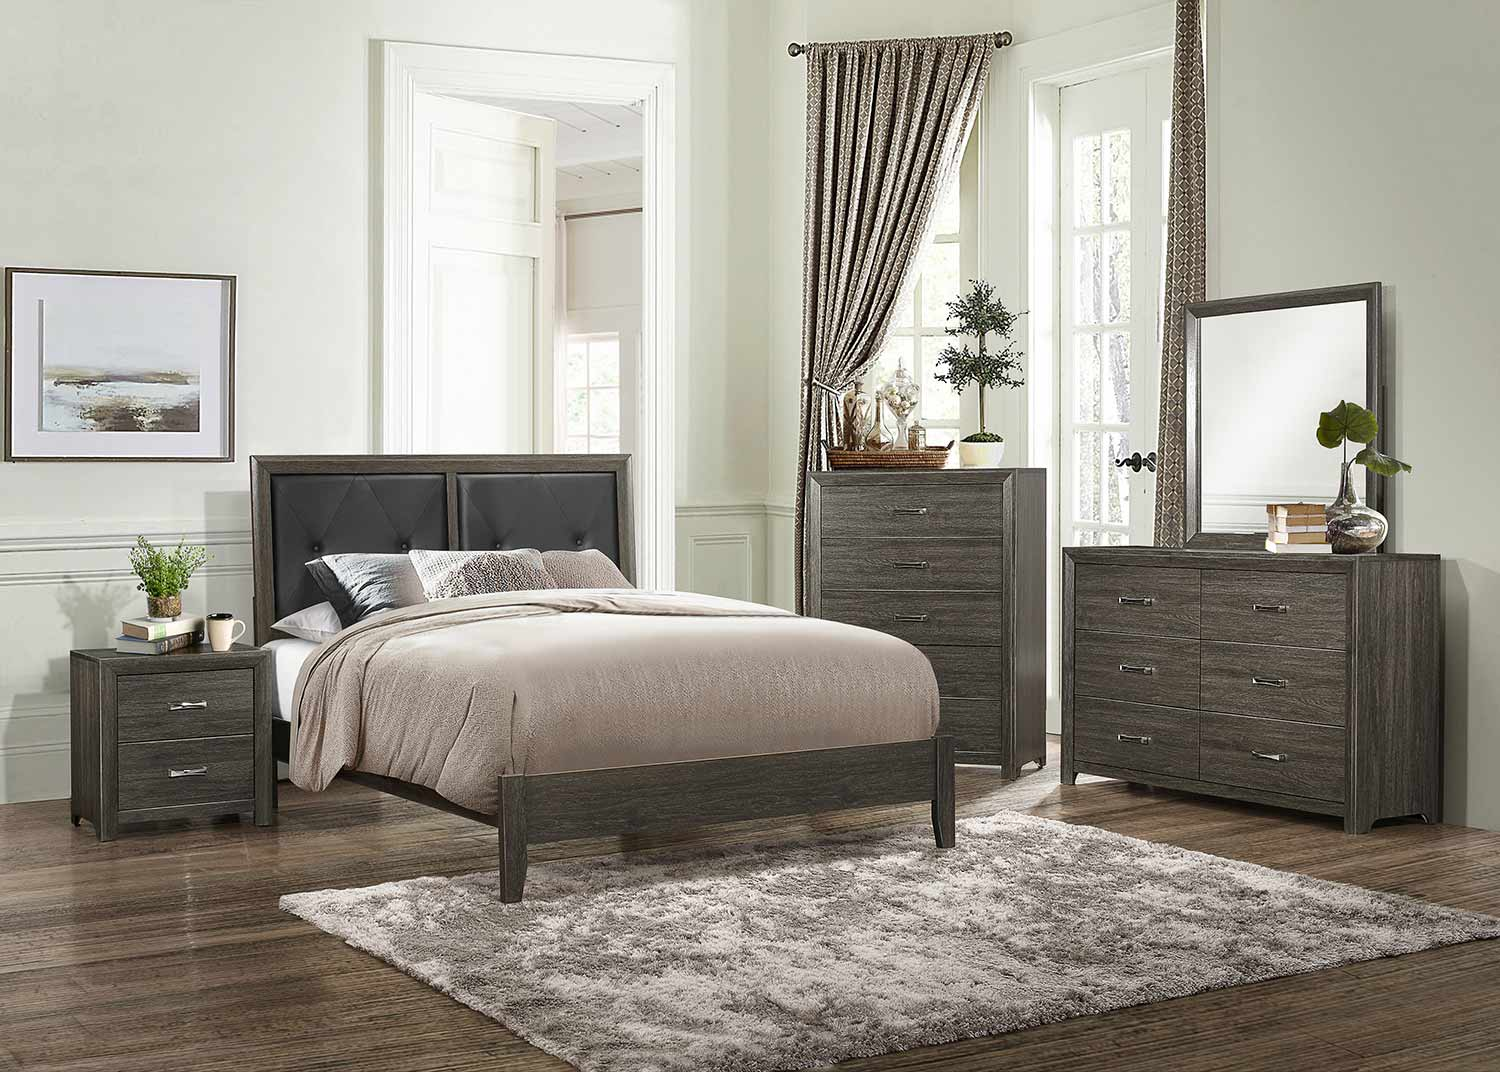 Homelegance Edina Bedroom Set - Brown-Gray